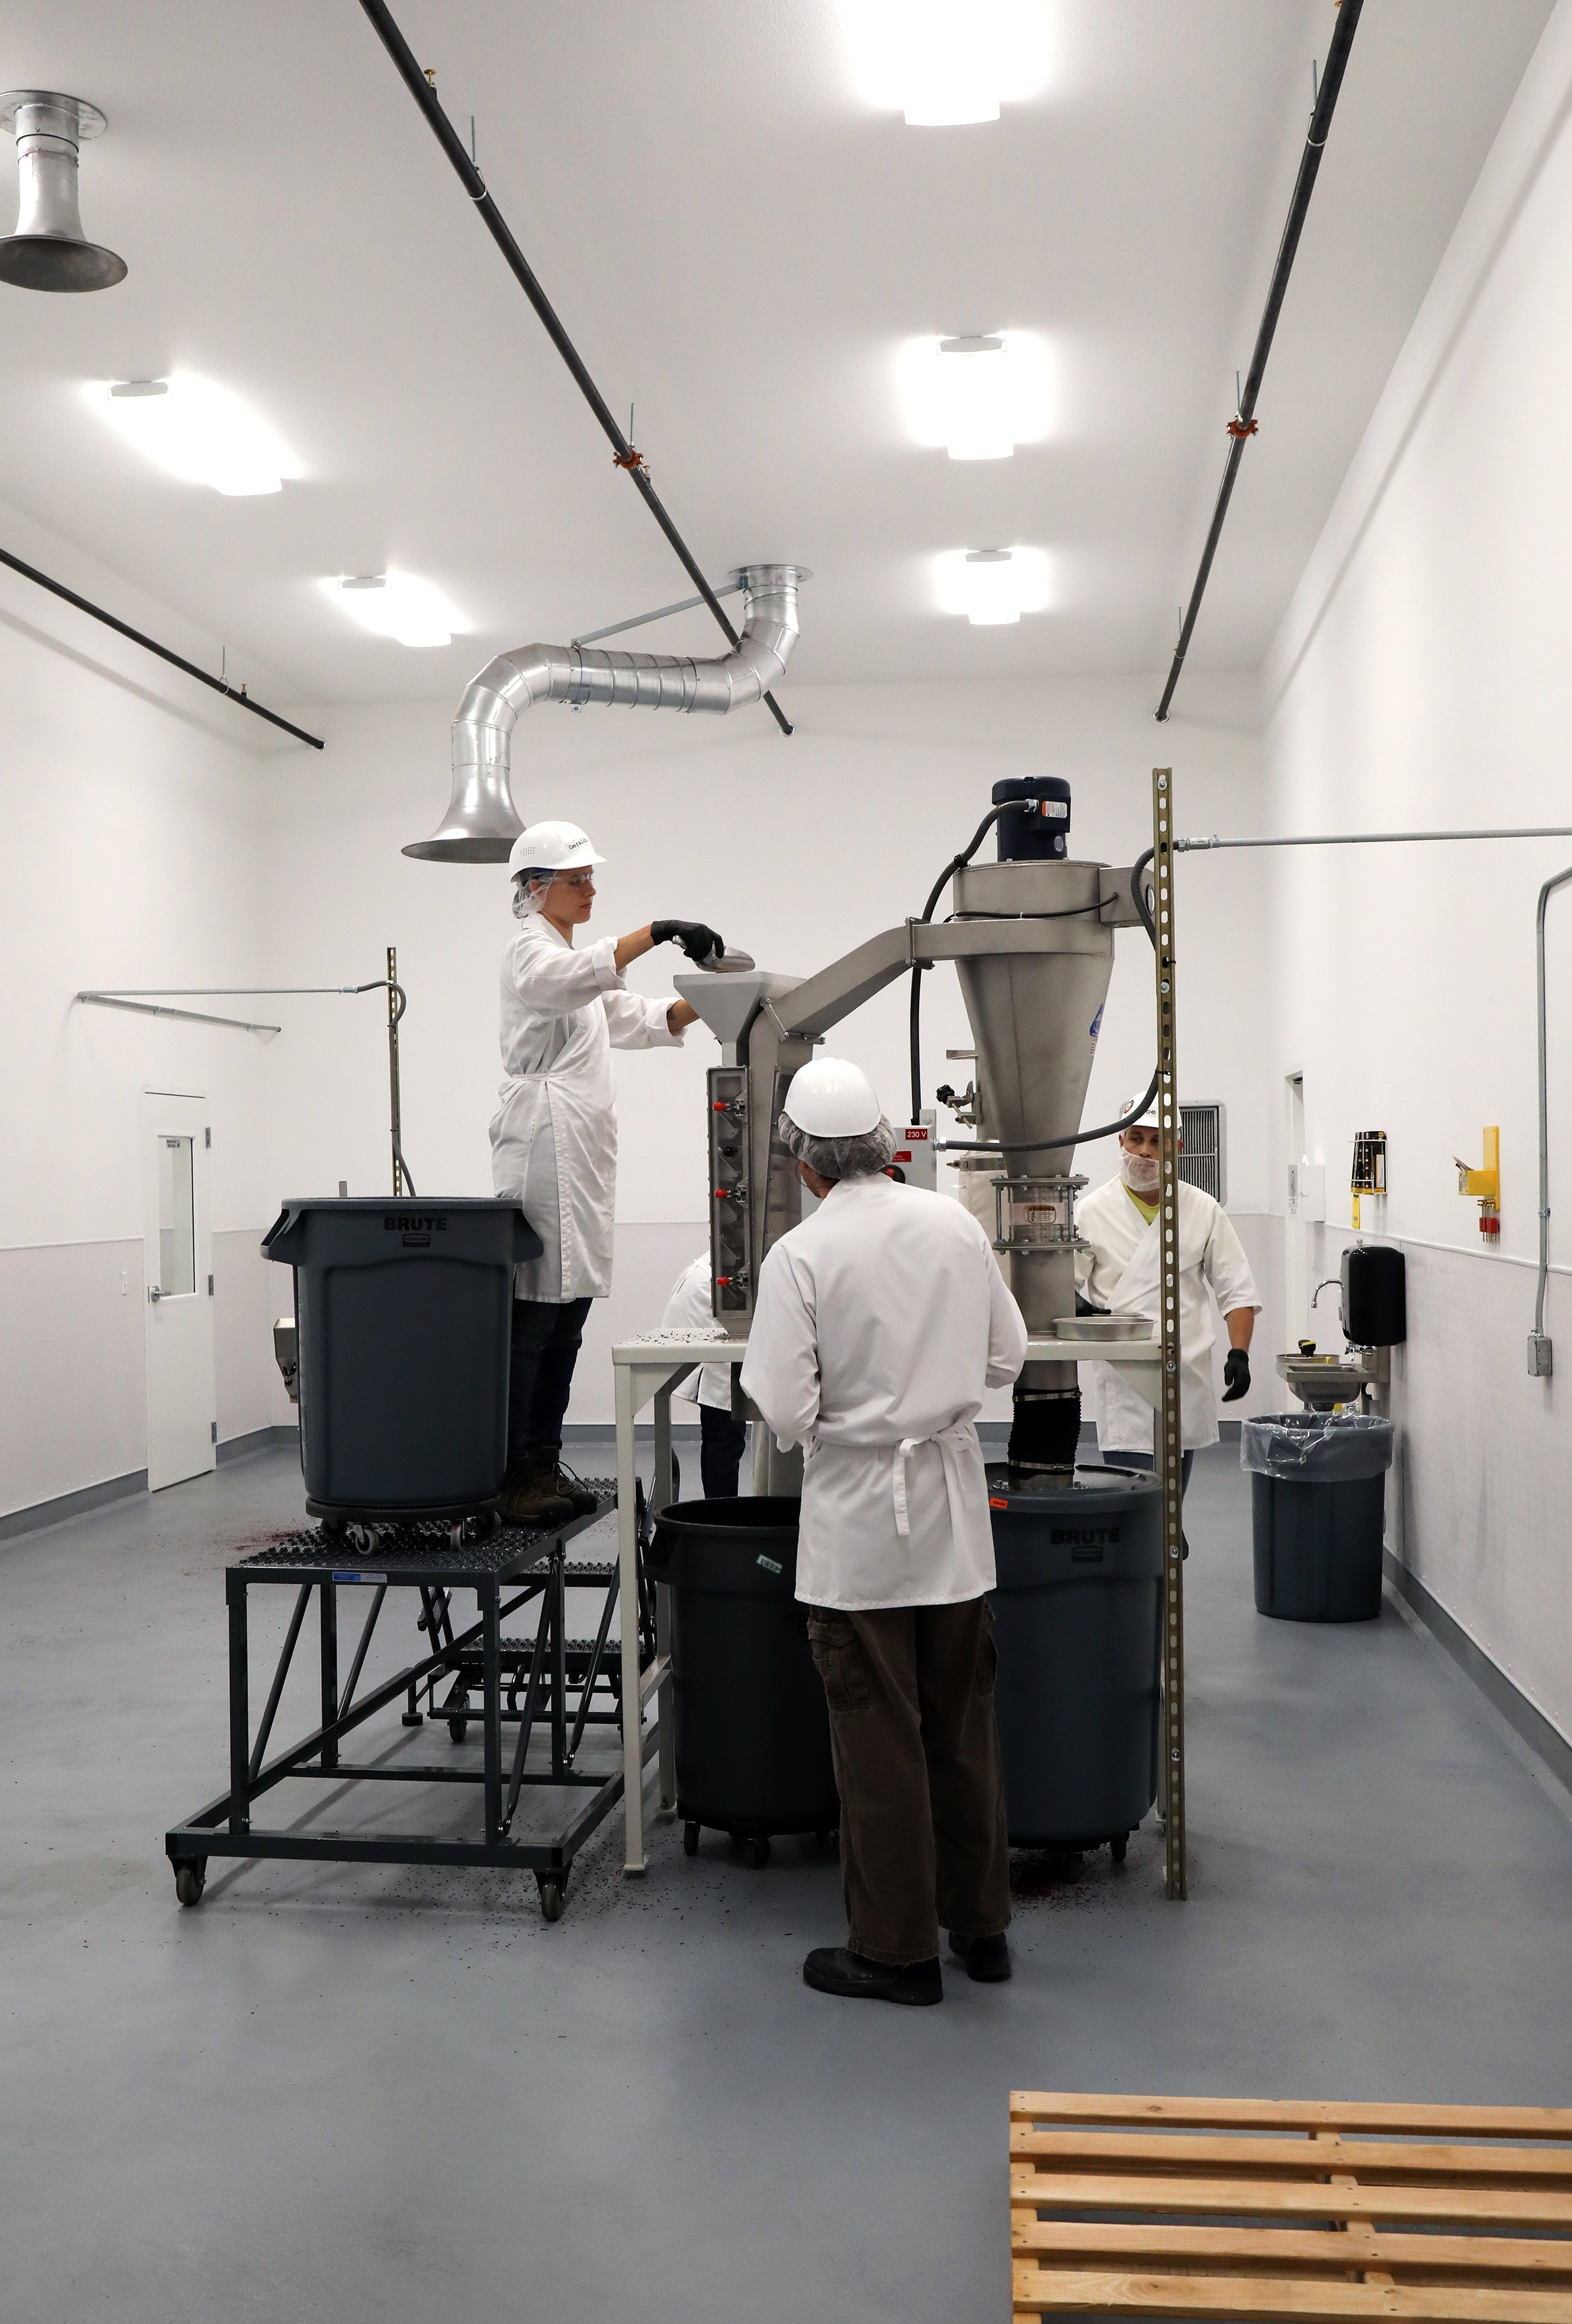 Three workers in lab coats and hard hats operating mill equiptment